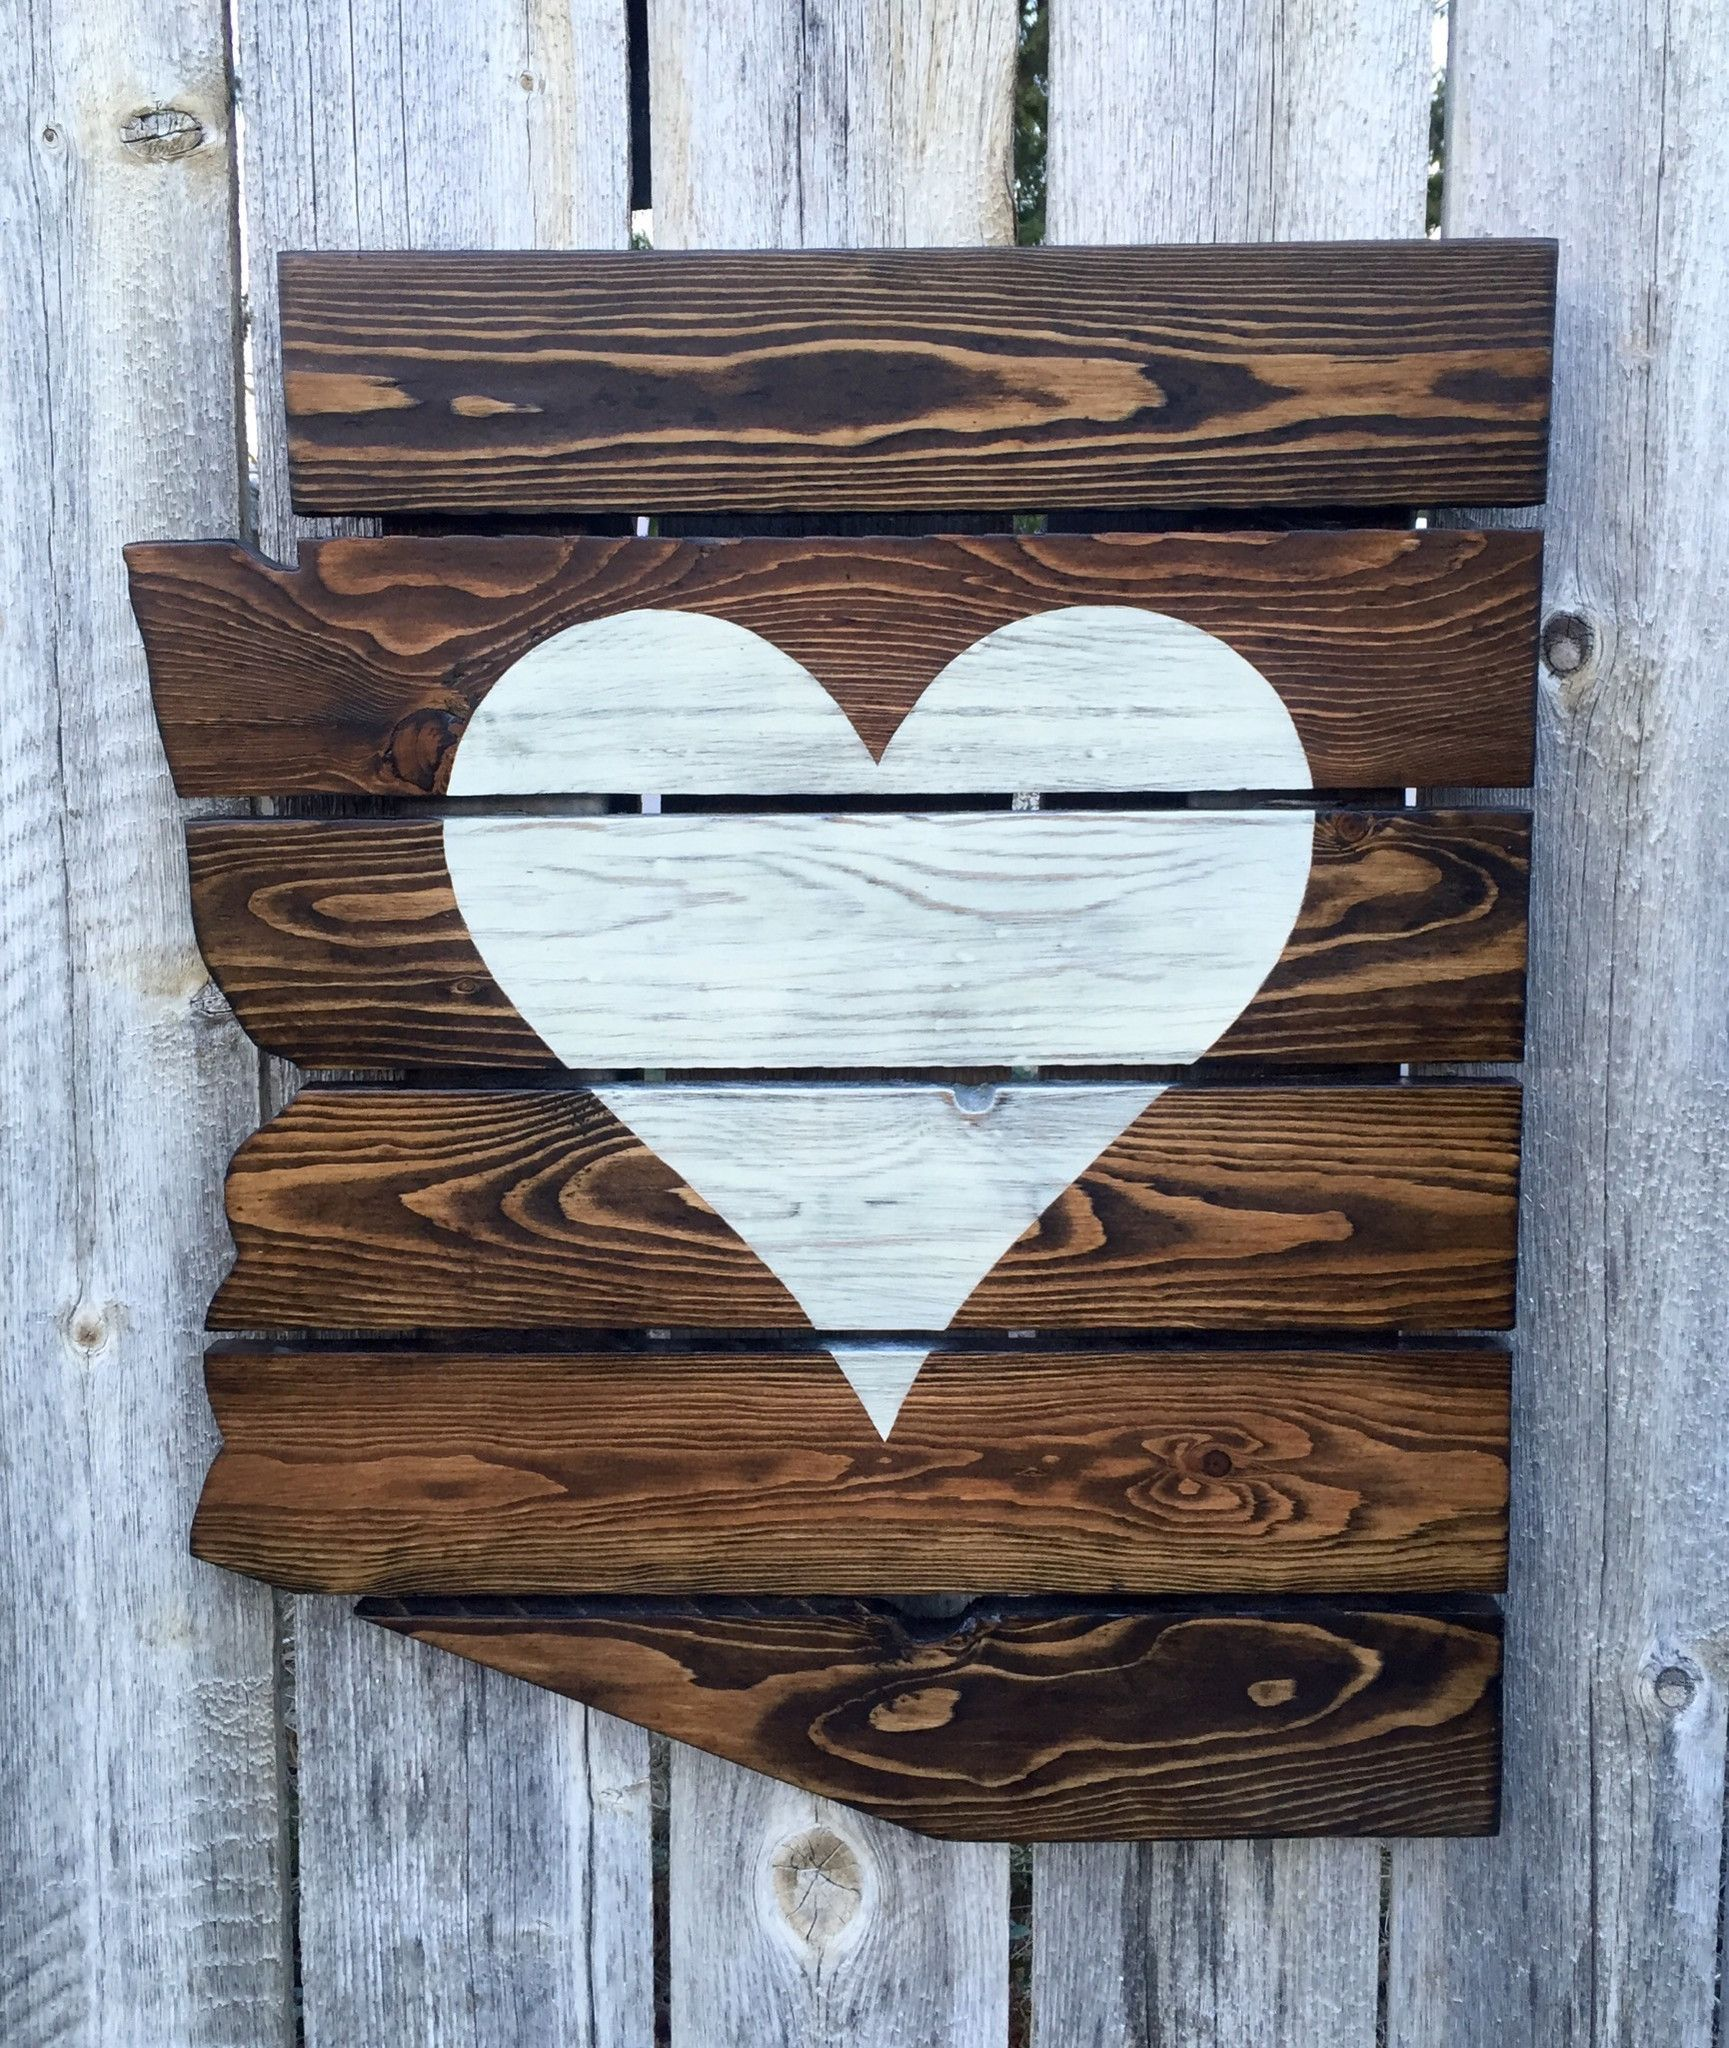 Wooden Texas Recycled Pallet Sign By Rusticrestyle On Etsy: This Jigsawed Arizona Is Handmade Out Of Upcycled Pallets